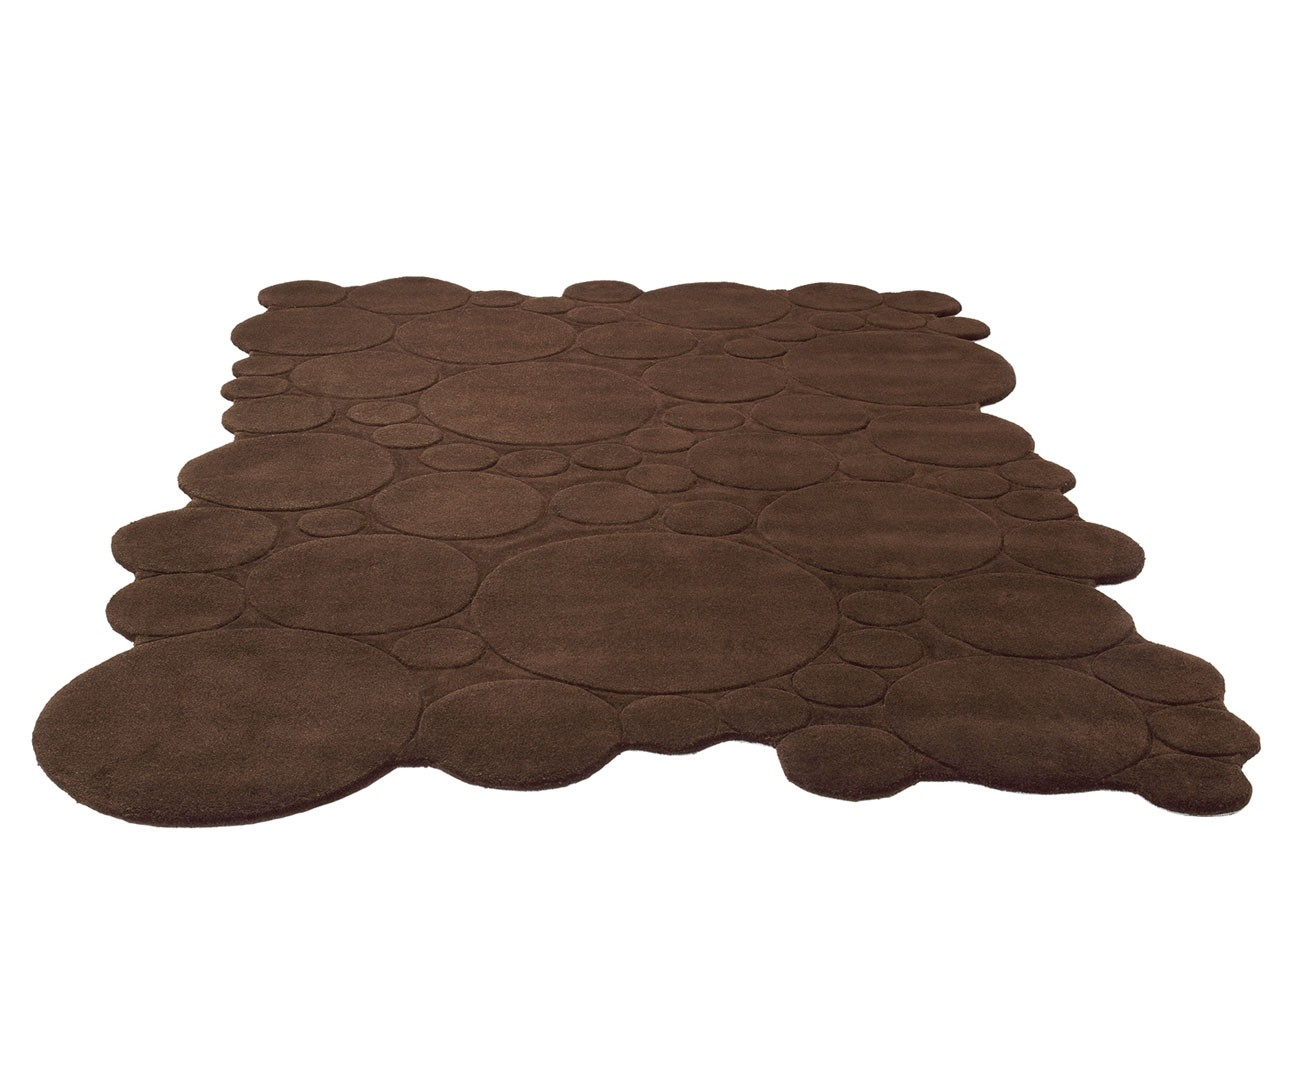 tapis moderne uni marron circle par esprit home - Tapis Marron